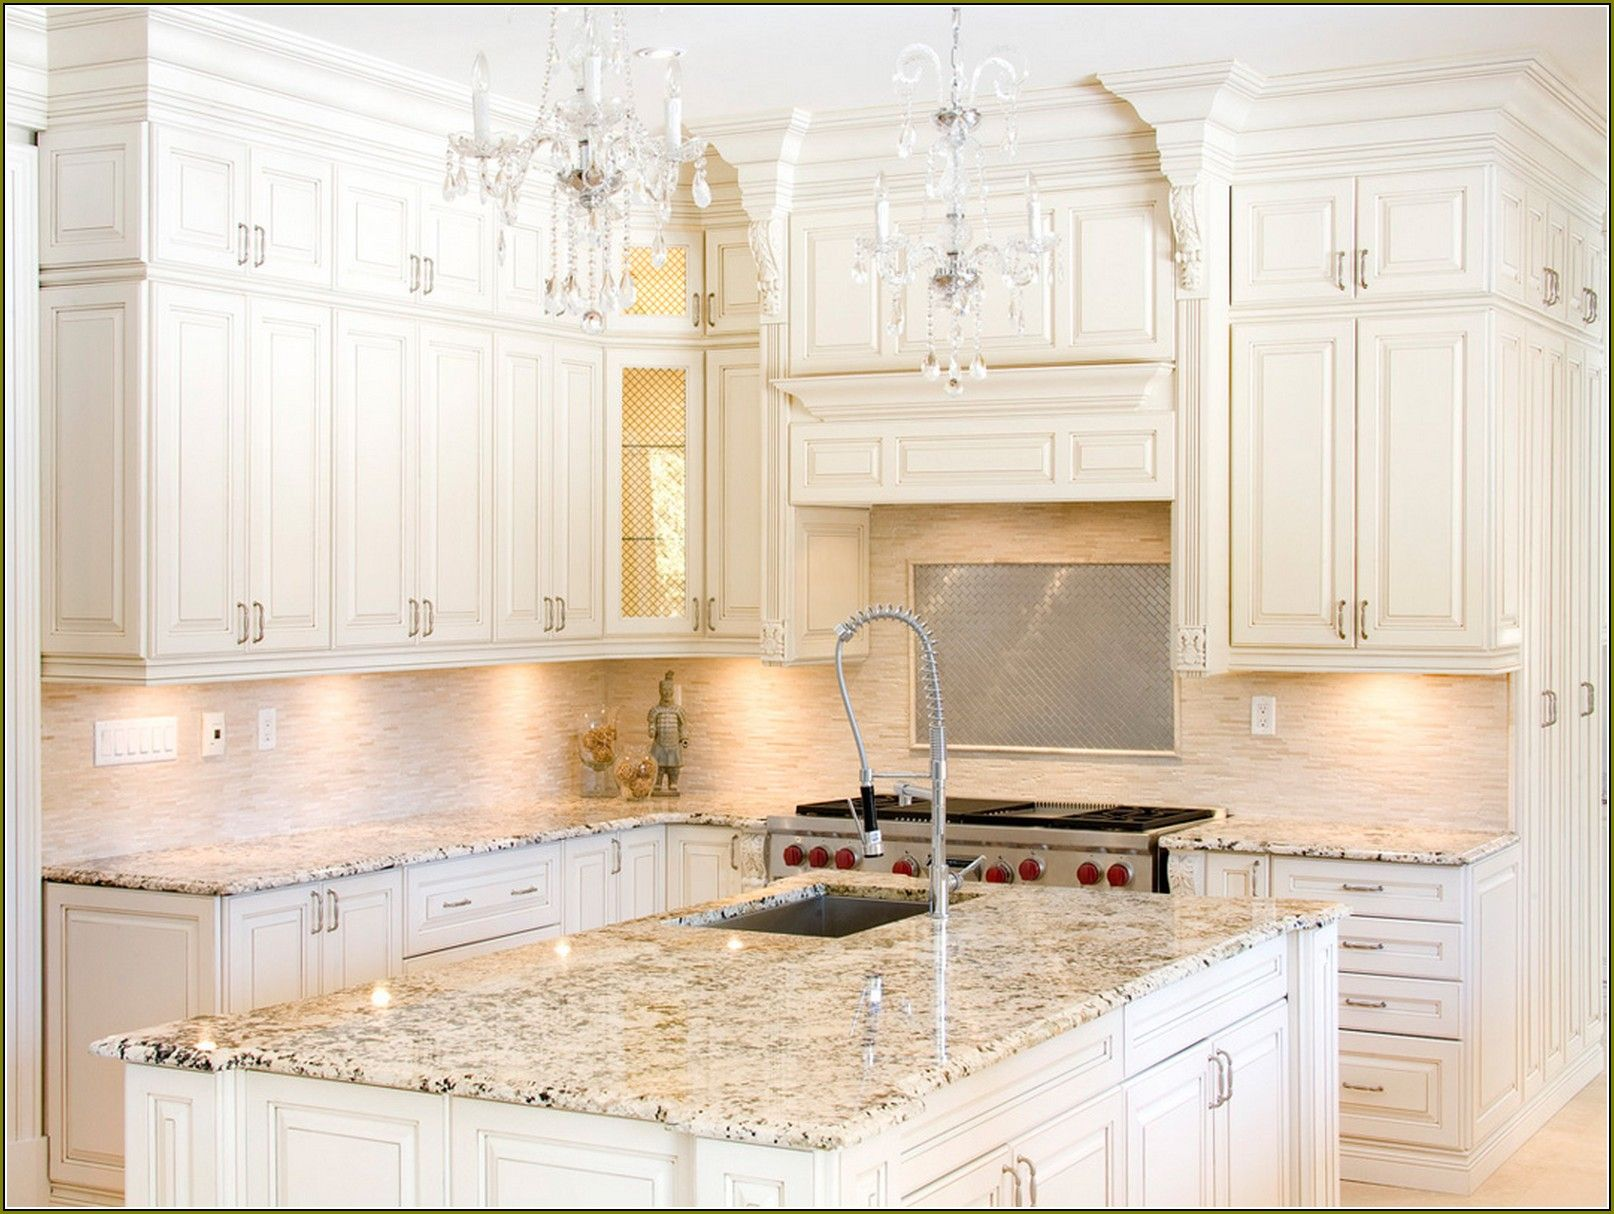 Off white kitchen cabinets with granite countertops for Kitchen cabinets ideas pictures